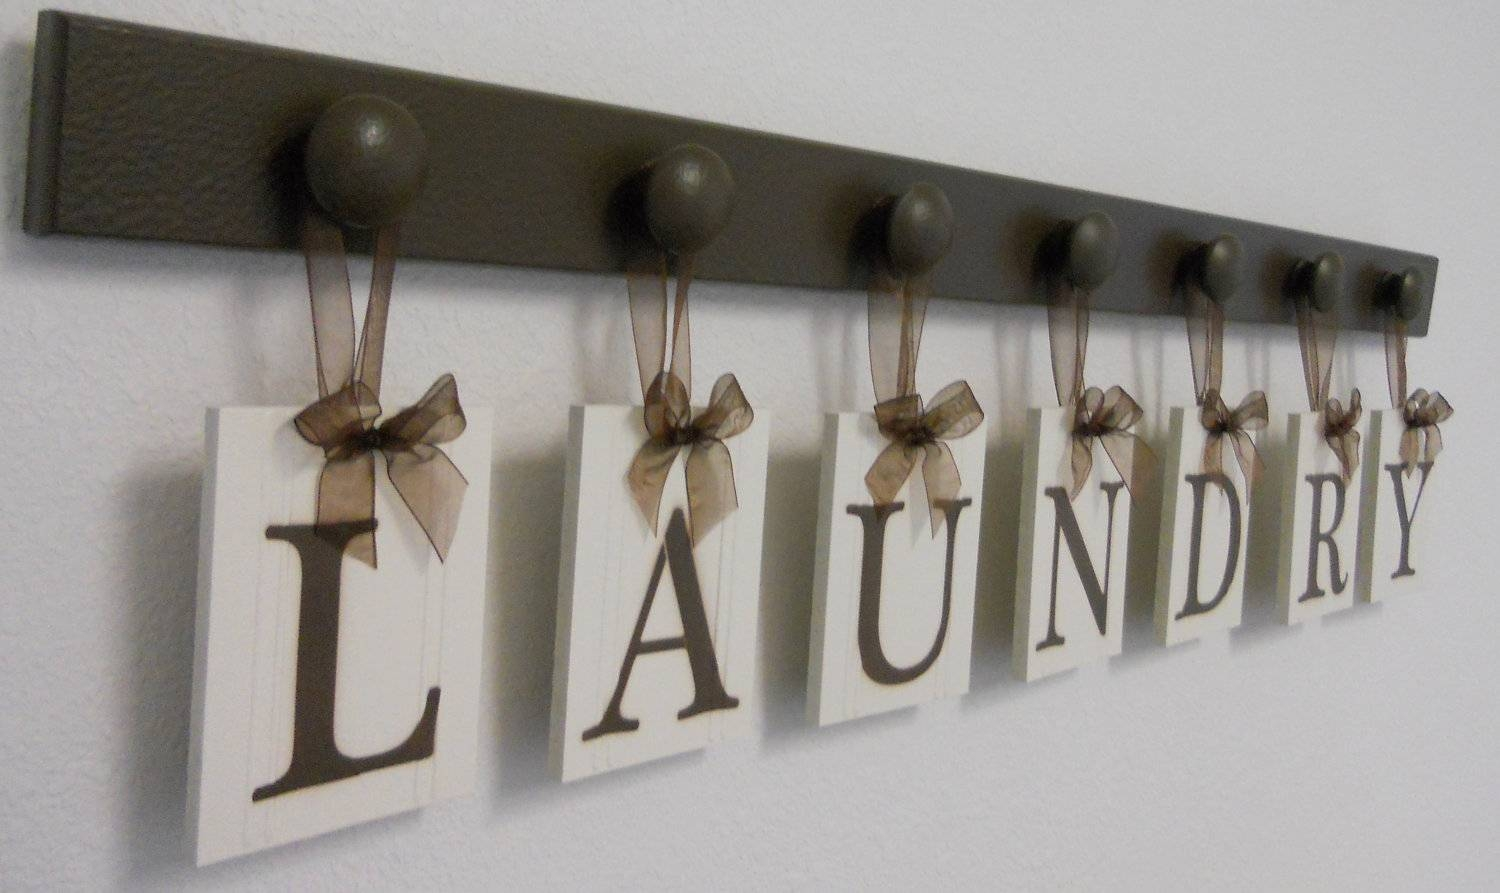 Laundry Room Decor Laundry Sign Laundry Room Sign Within Most Recent Laundry Room Wall Art Decors (View 12 of 25)